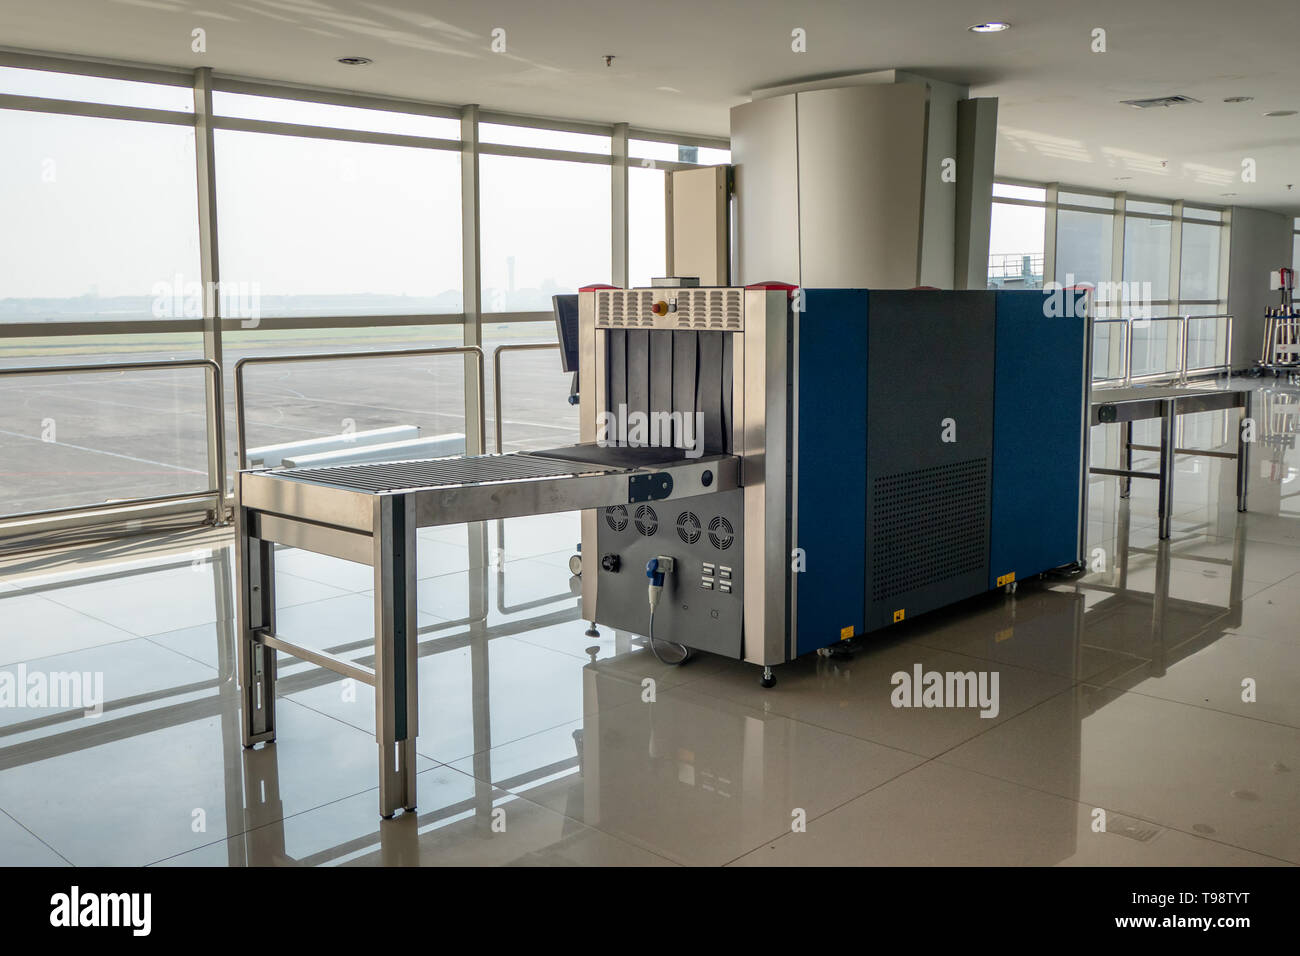 X-ray scanner baggage and metal detectors with conveyor belt in the